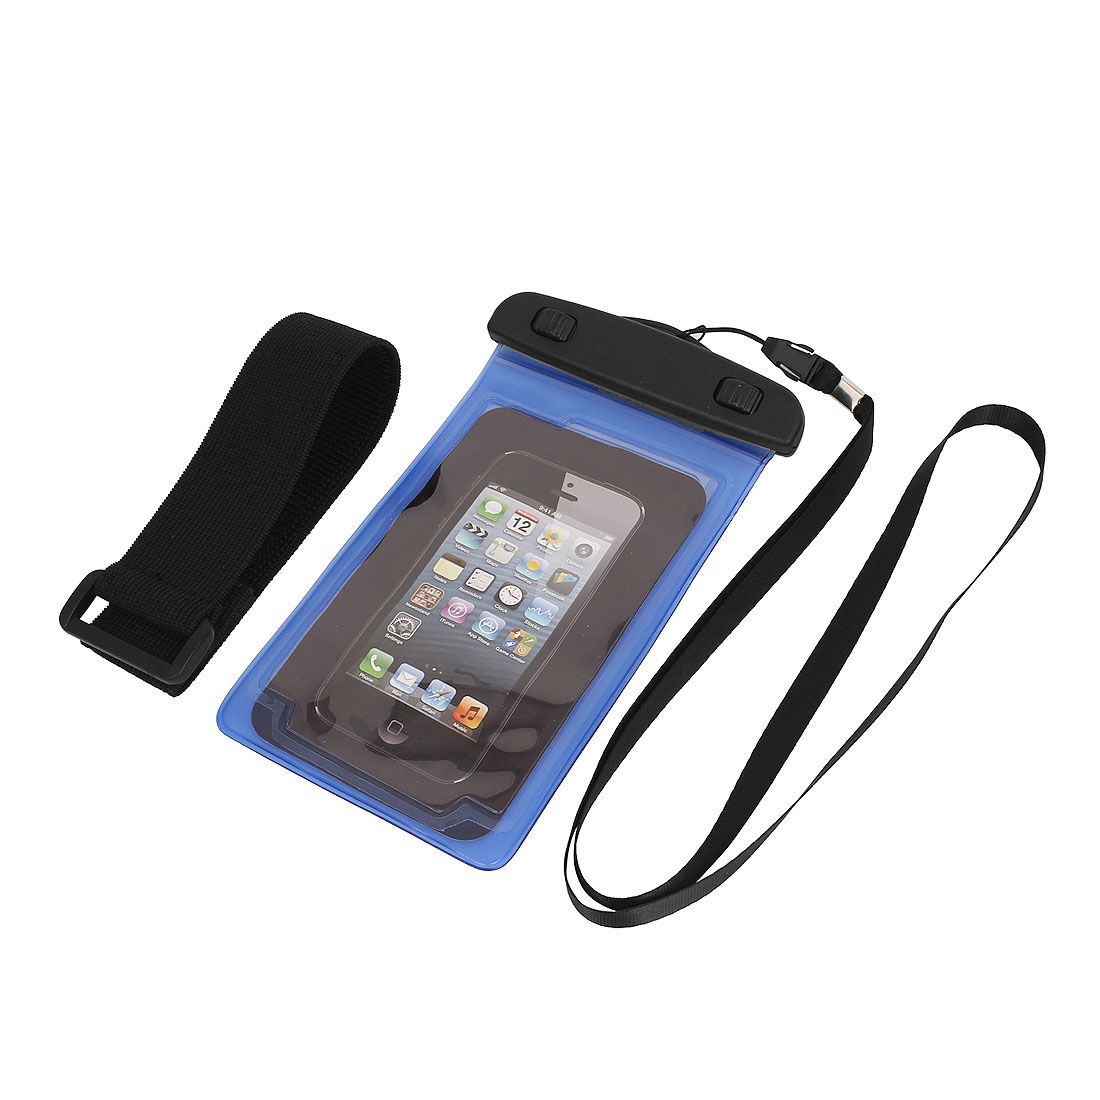 Unique Bargains Underwater Waterproof Case Dry Bag Cover Pouch Holder Blue for 4.7  Cell Phone